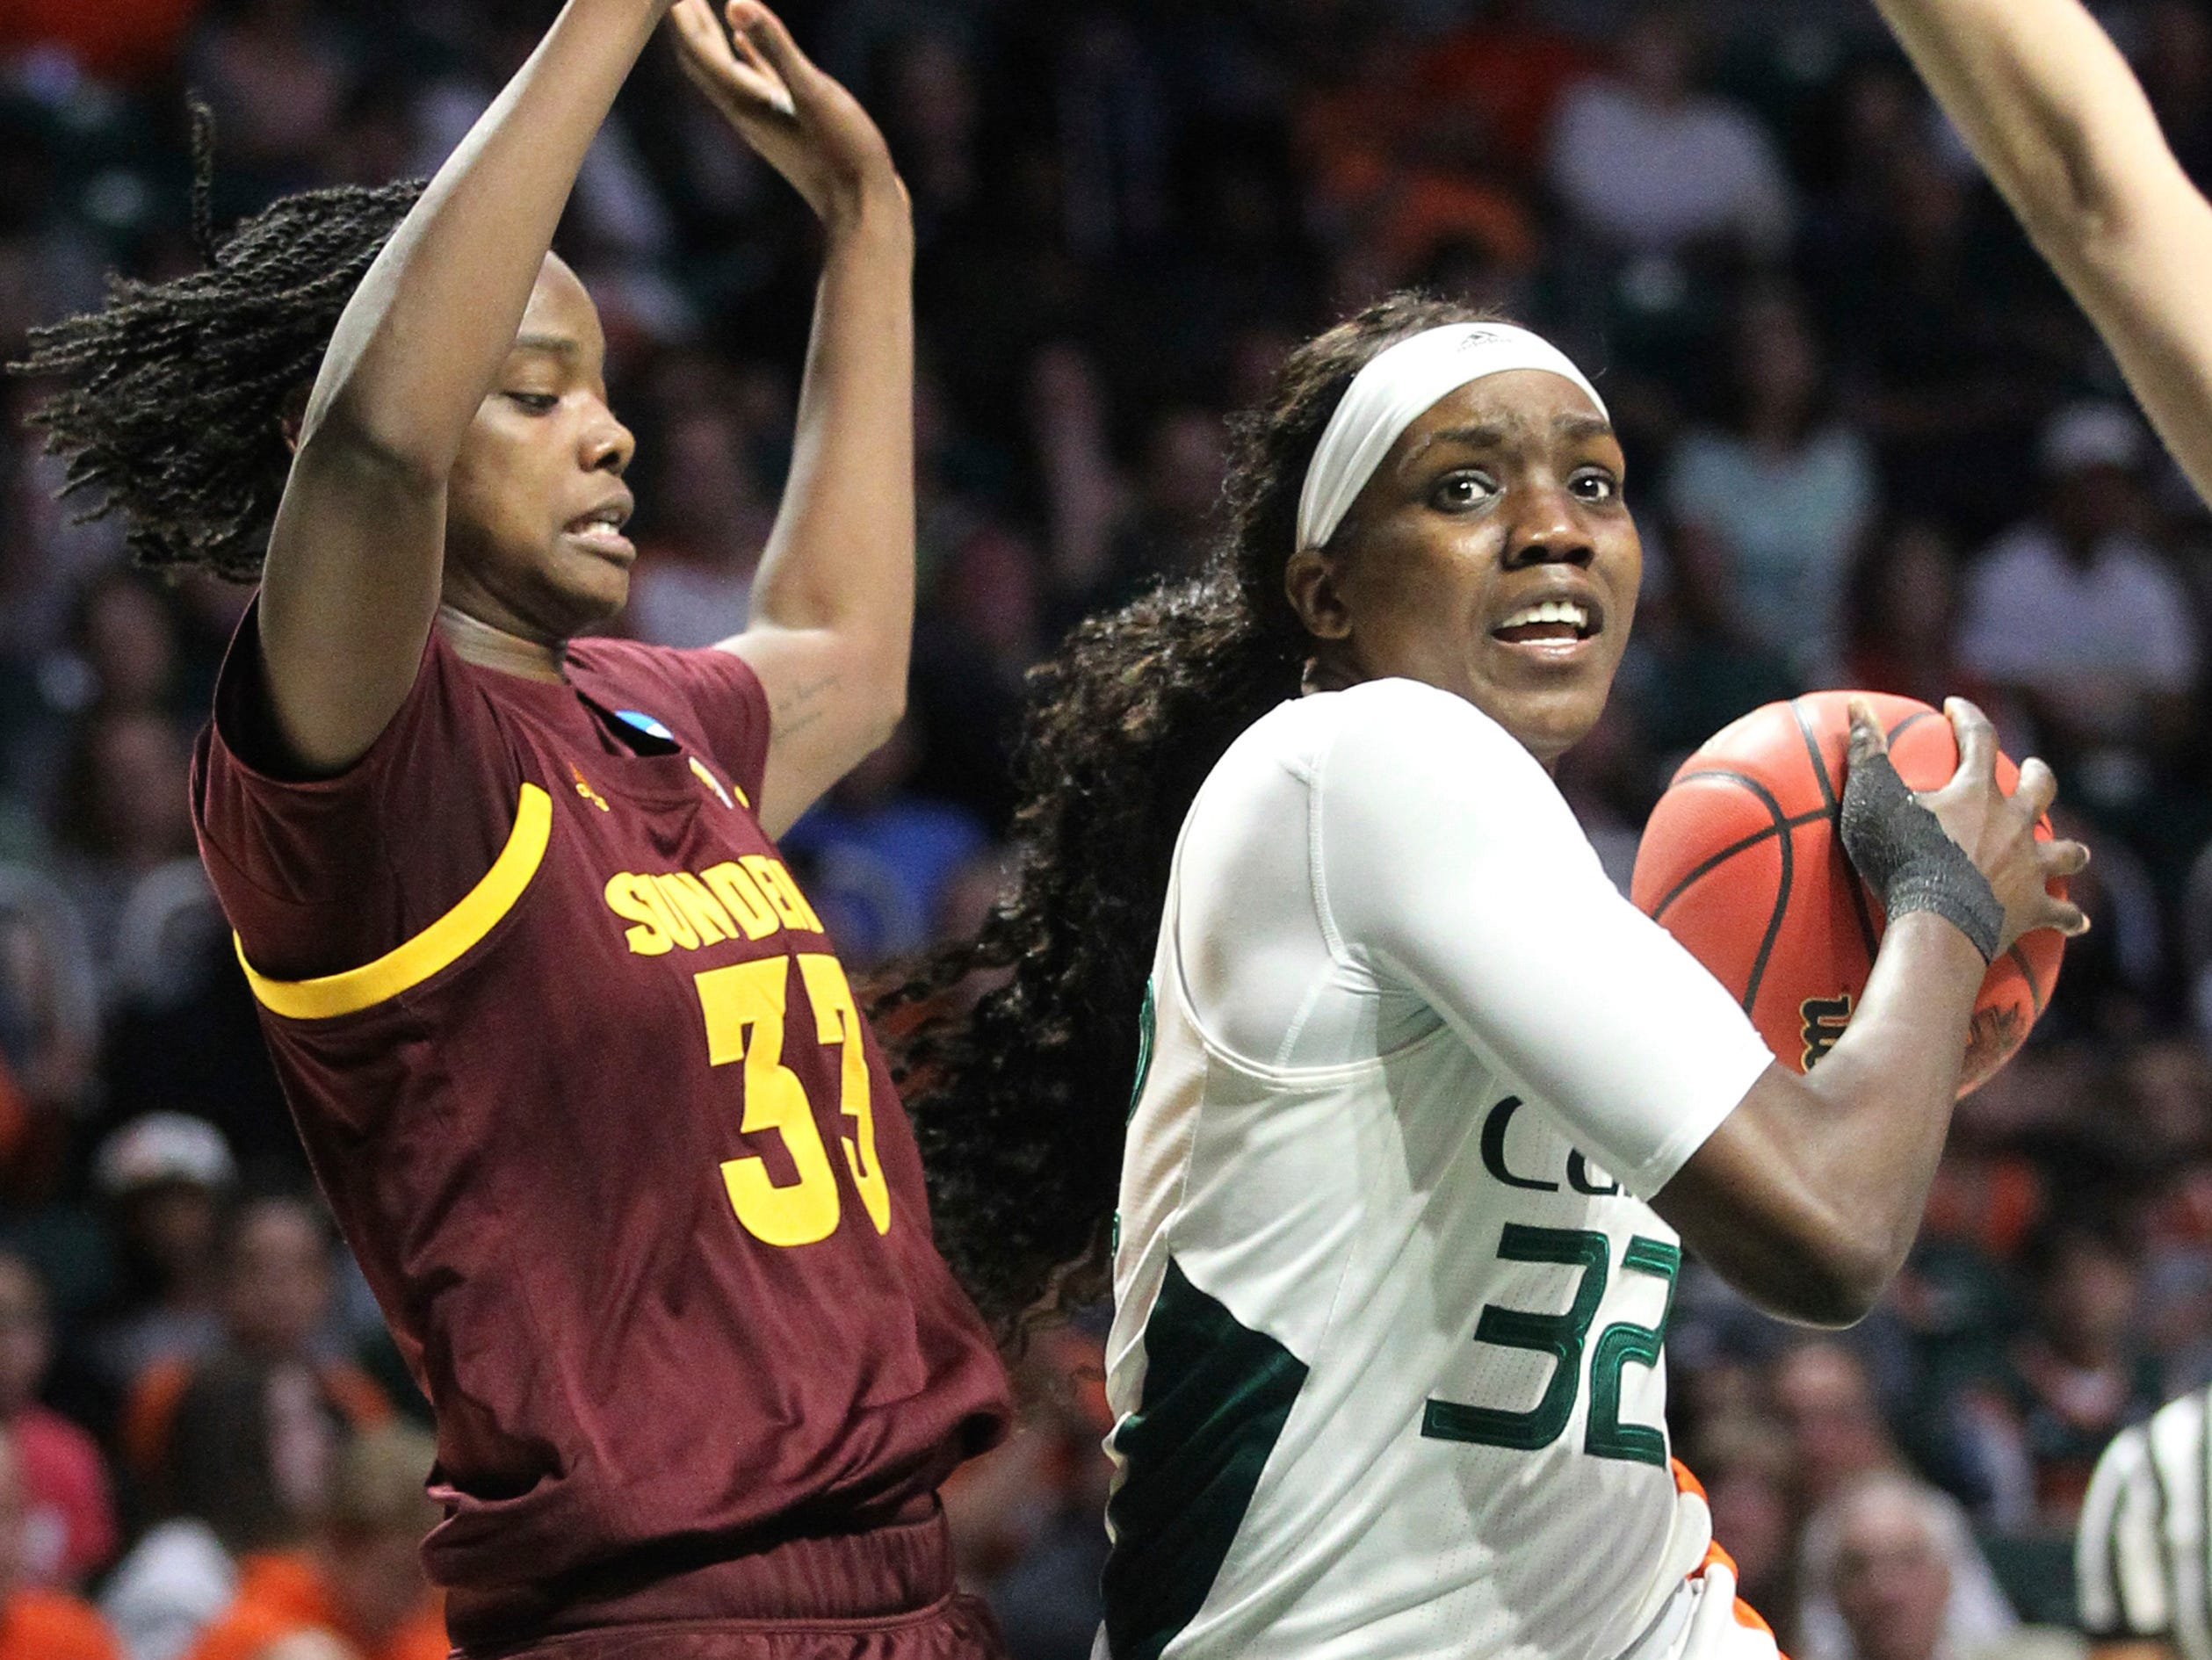 Miami's Beatrice Mompremier (32) moves the ball on Arizona State's Charnea Johnson-Chapman, left, during a second-round women's college basketball game in the NCAA Tournament, Sunday, March 24, 2019, in Coral Gables, Fla. (AP Photo/Luis M. Alvarez)